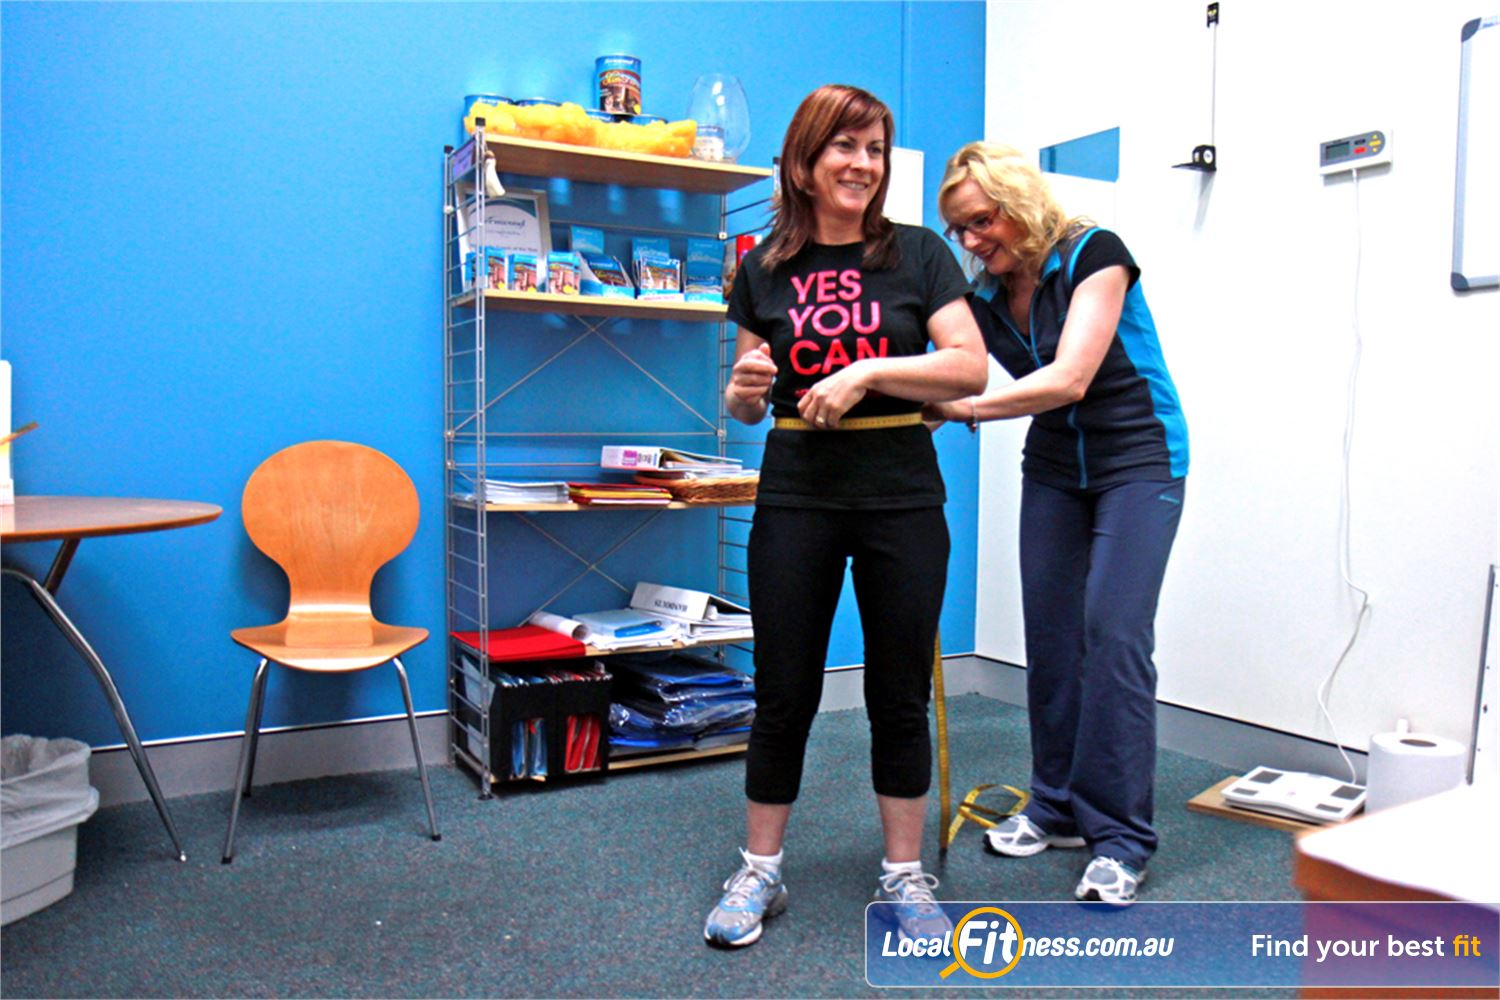 Fernwood Fitness Petrie Slimplicity has seen thousands of women successfully lose weight and reach their goals.